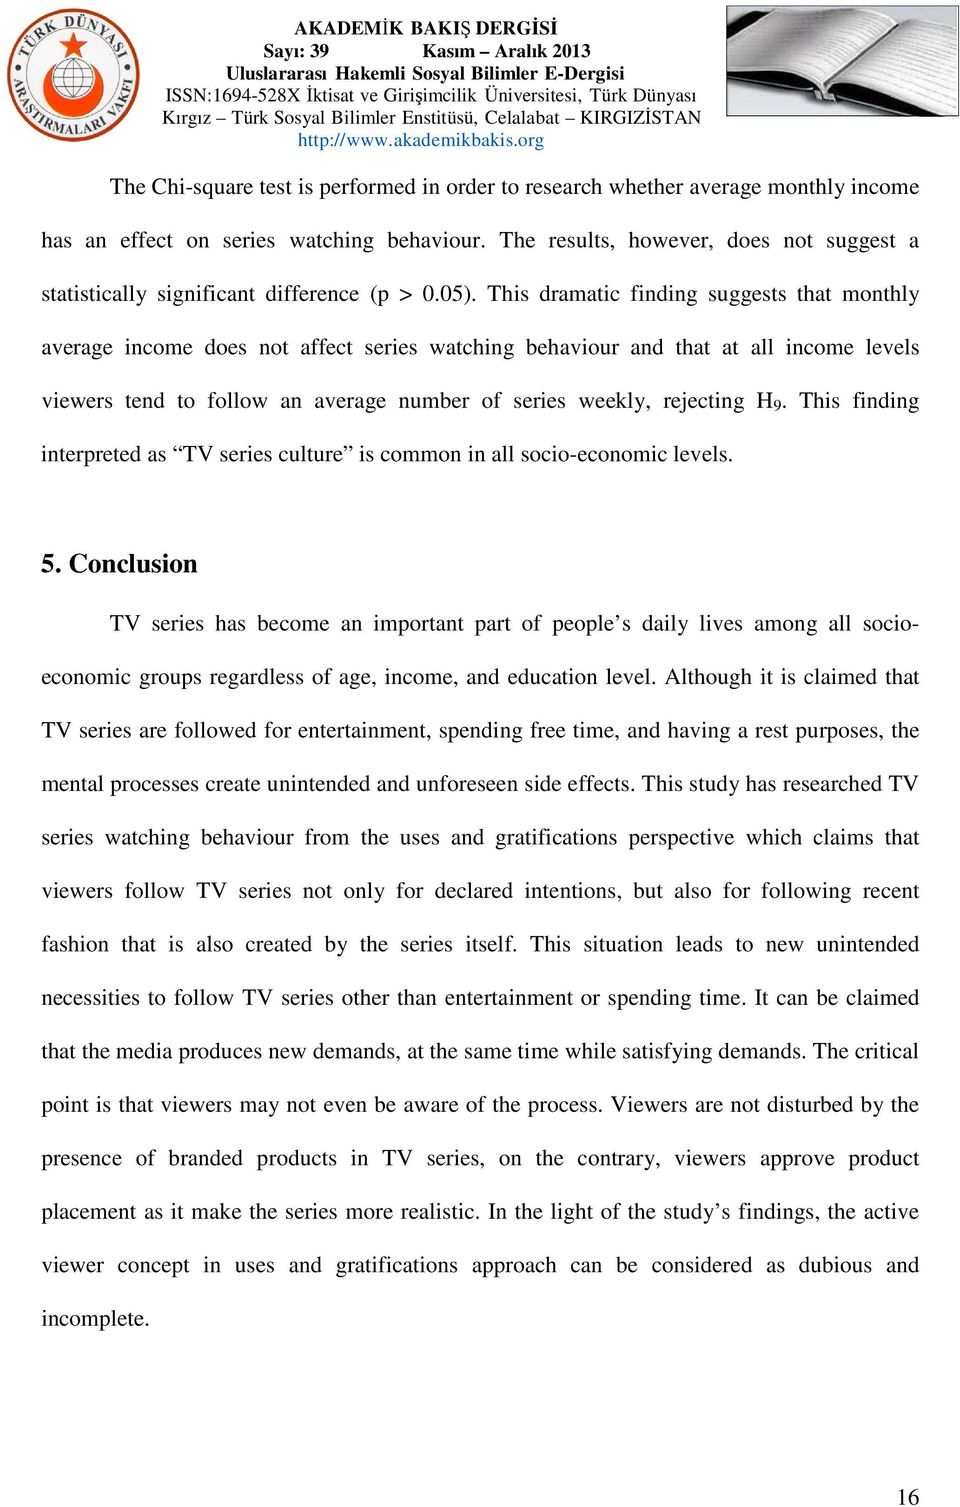 This dramatic finding suggests that monthly average income does not affect series watching behaviour and that at all income levels viewers tend to follow an average number of series weekly, rejecting